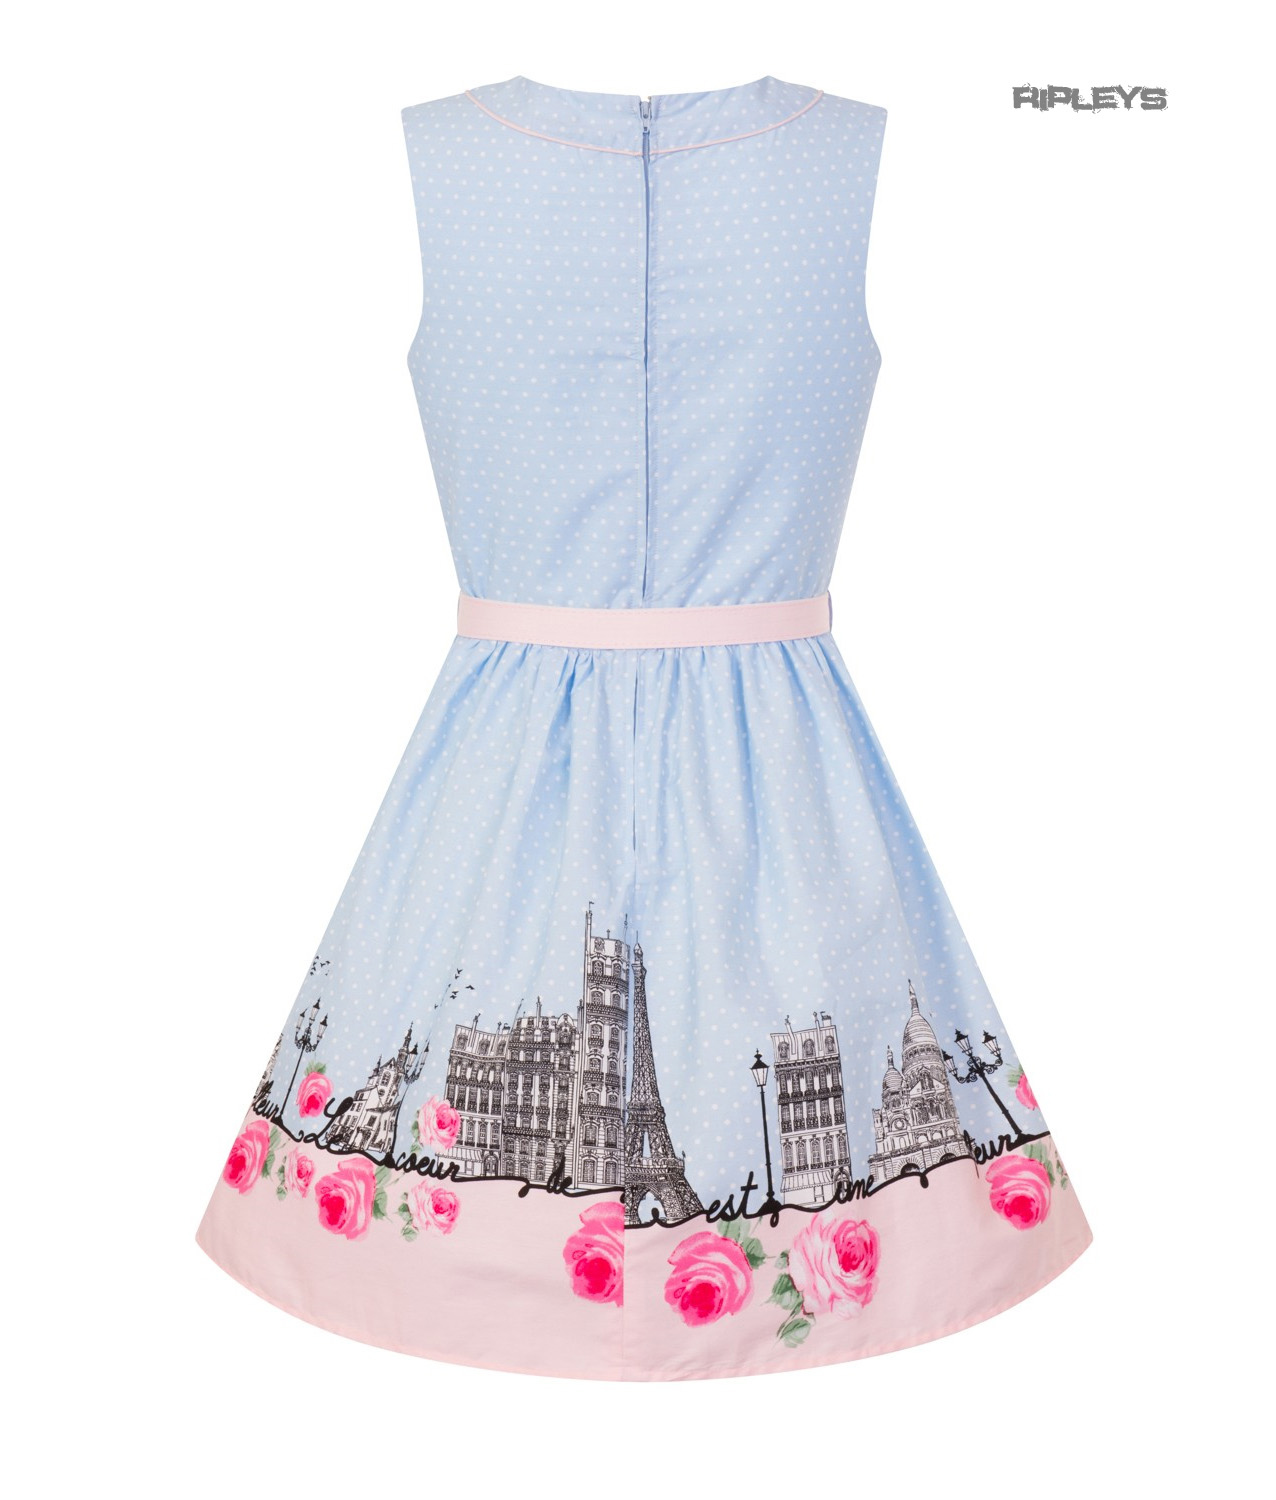 Hell-Bunny-50s-Vintage-Blue-Polka-Dot-PANAME-Mini-Dress-Paris-All-Sizes thumbnail 30